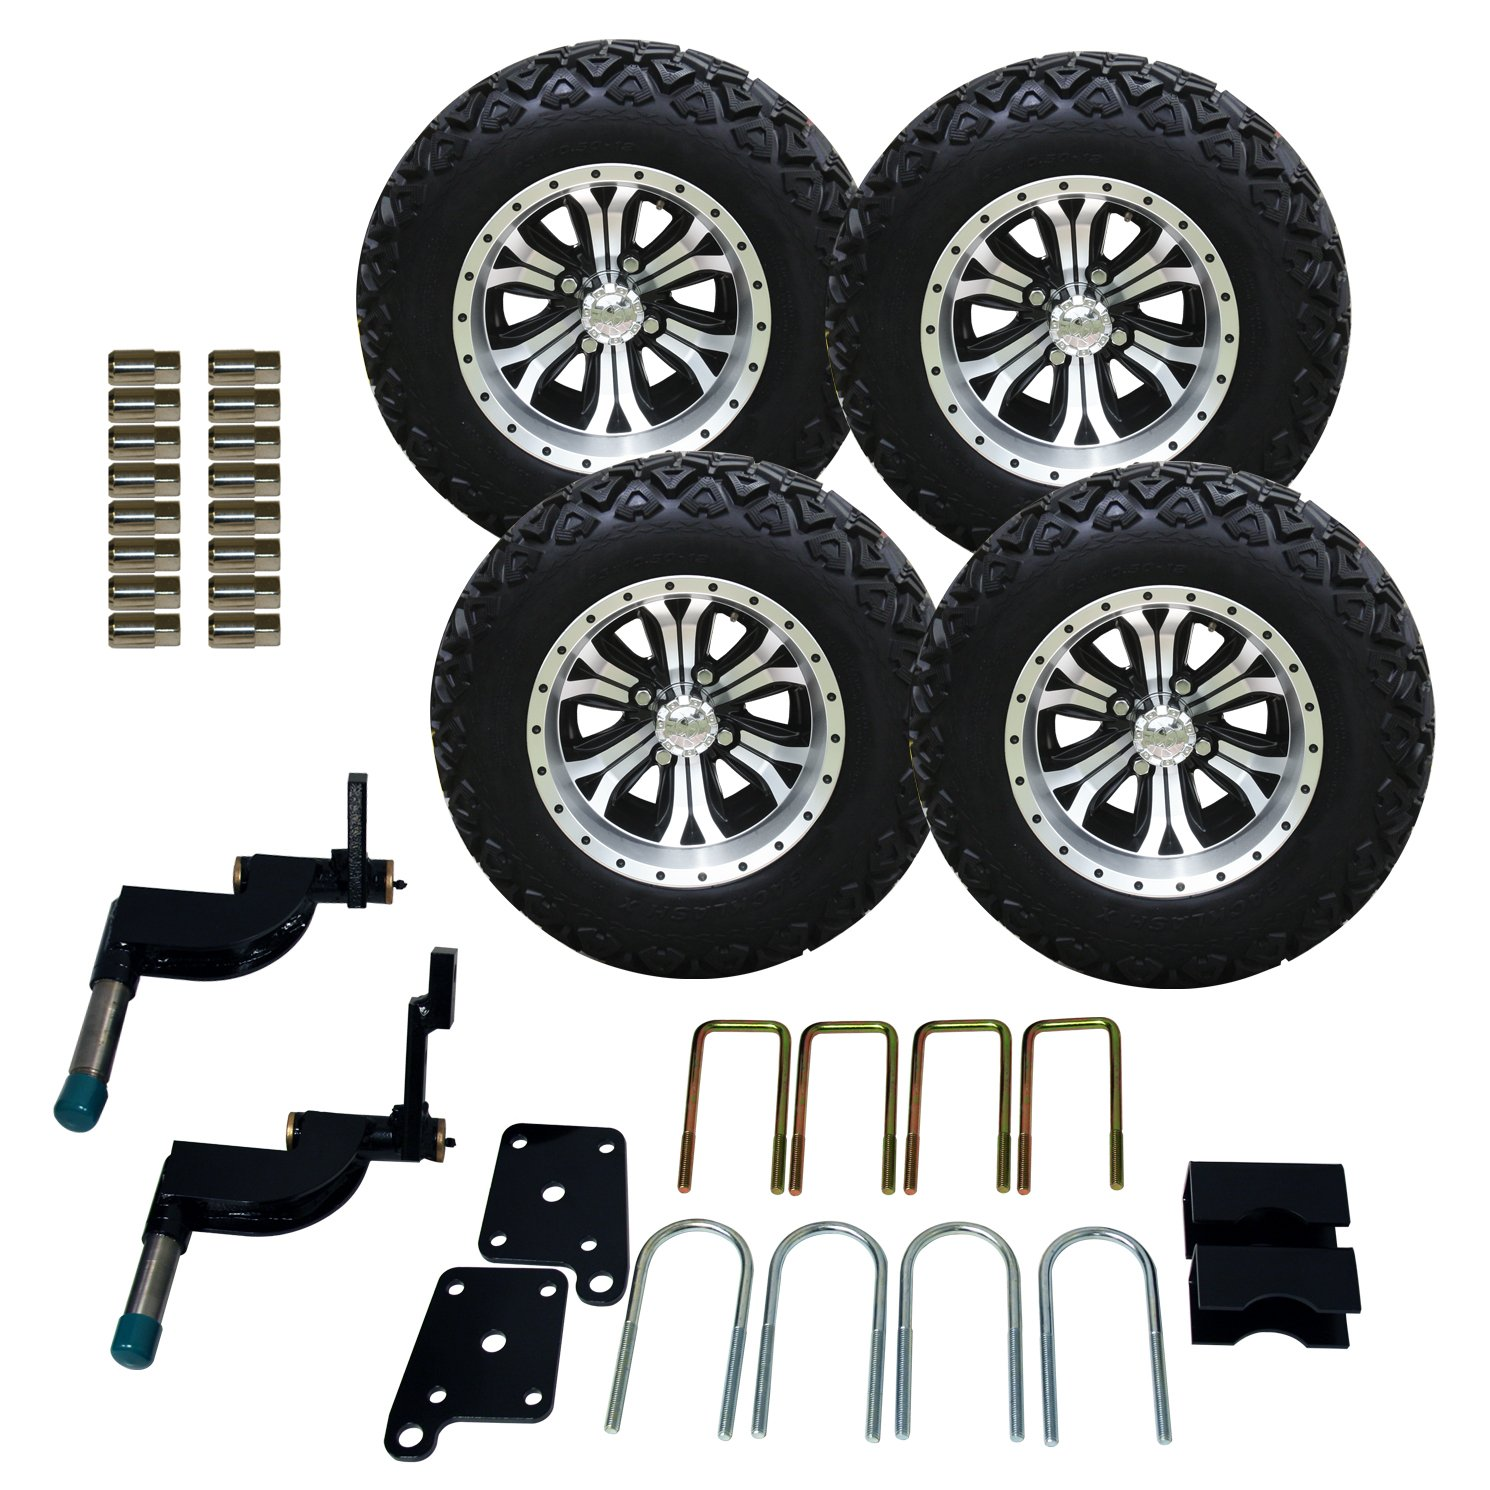 Pro-Fit 750503PKG 23 by 10.50 to 12-Inch Backlash X Tire with Machined Black Accents Optimus Wheel Package and Lift Kit Combo for TXT, 5-Inch helo he866 gloss black wheel with chrome accents 20x8 5 6x135mm